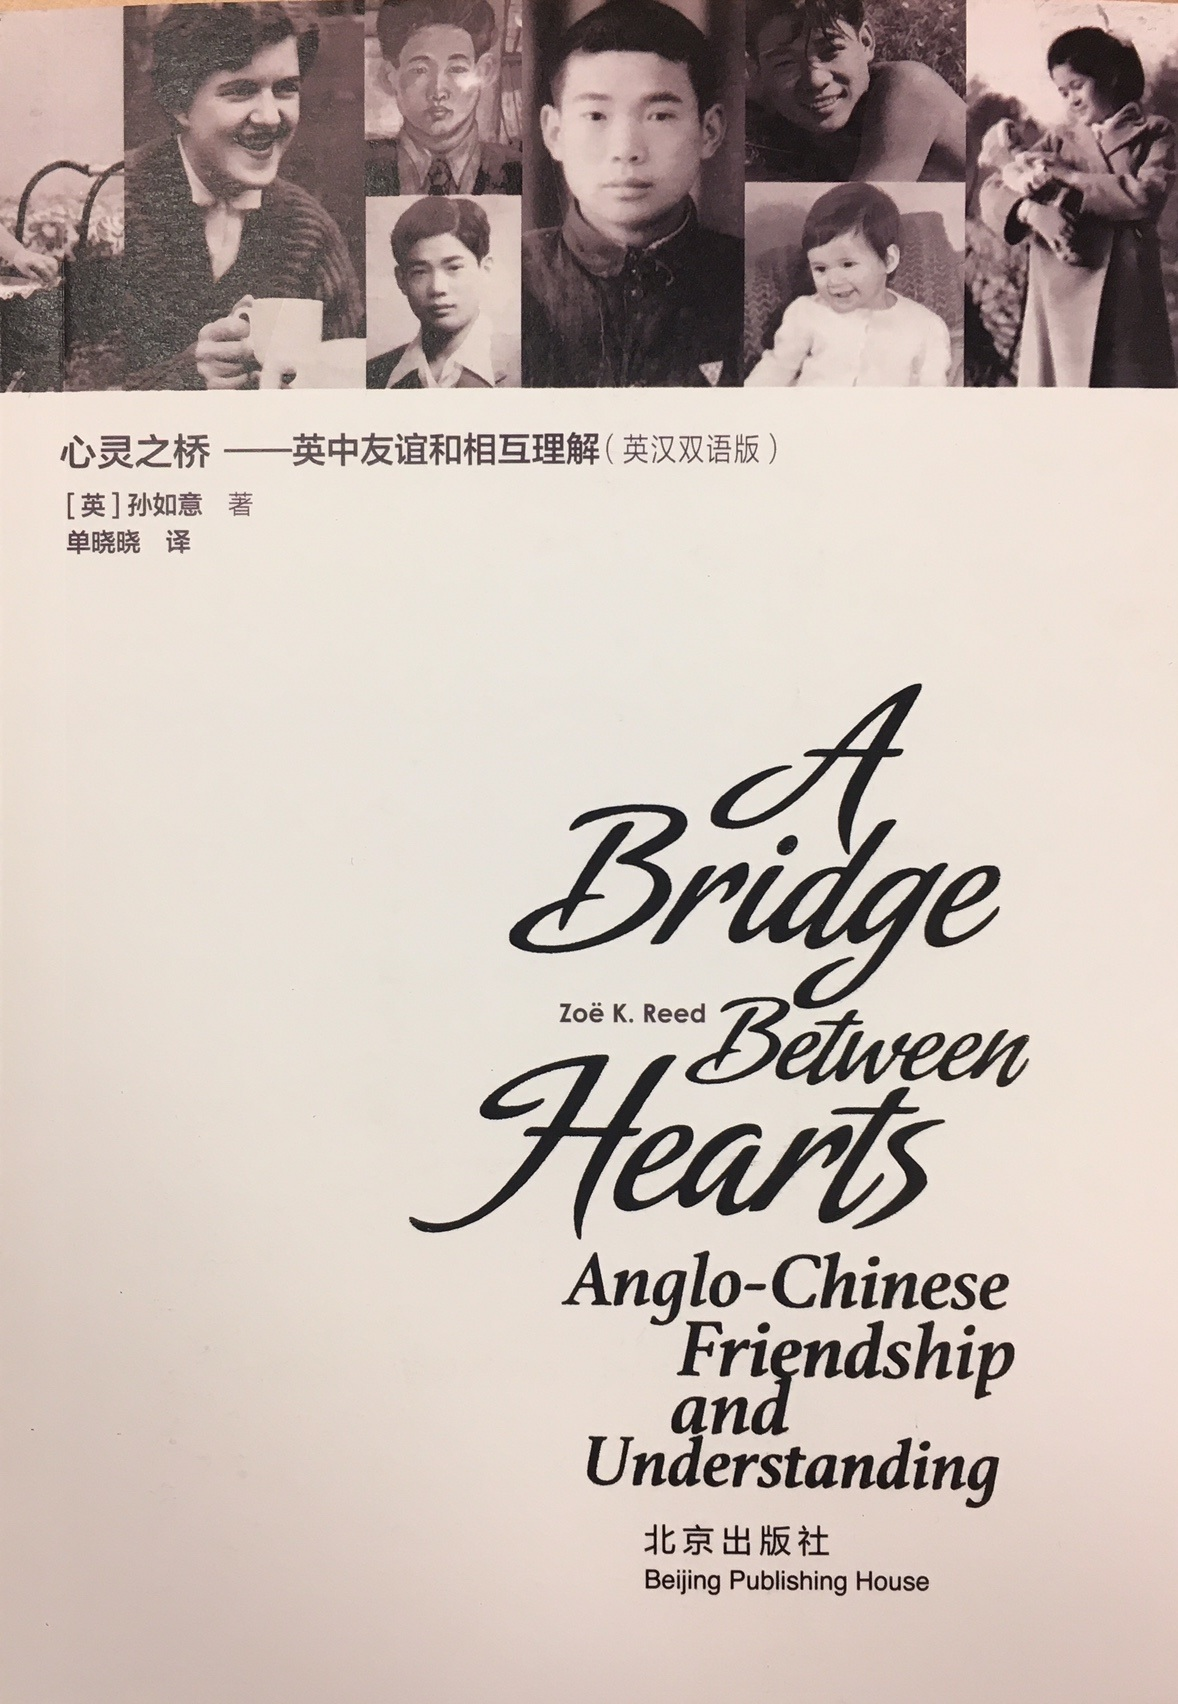 A Bridge Between Hearts: Anglo-Chinese Friendship and Understanding